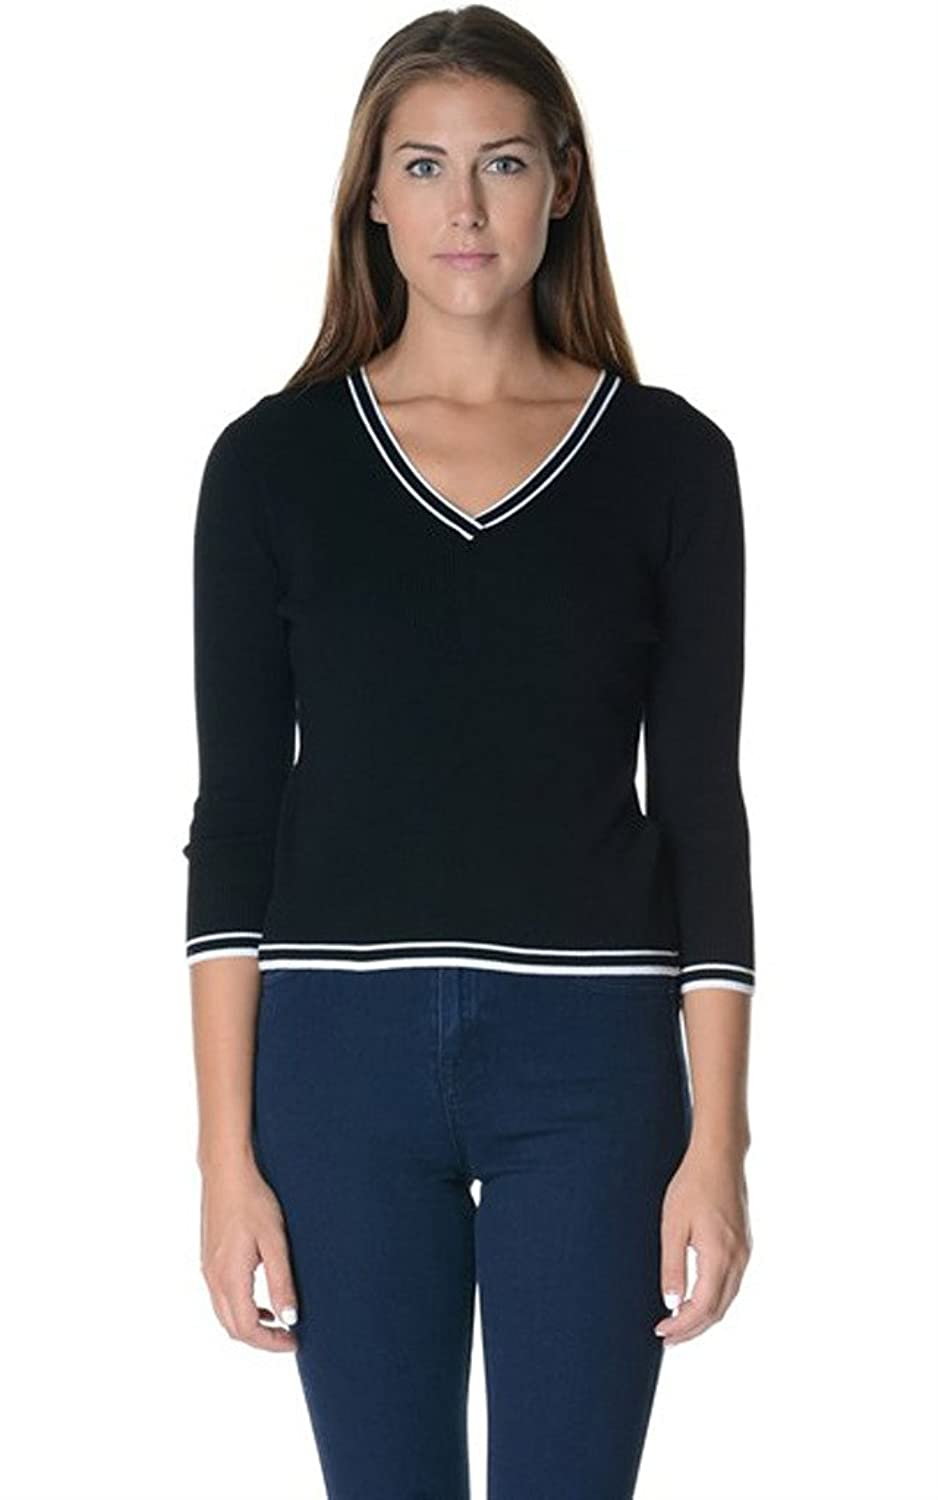 Bloom Women's Three Quarter Sleeve V-Neck Knit Pullover Sweater